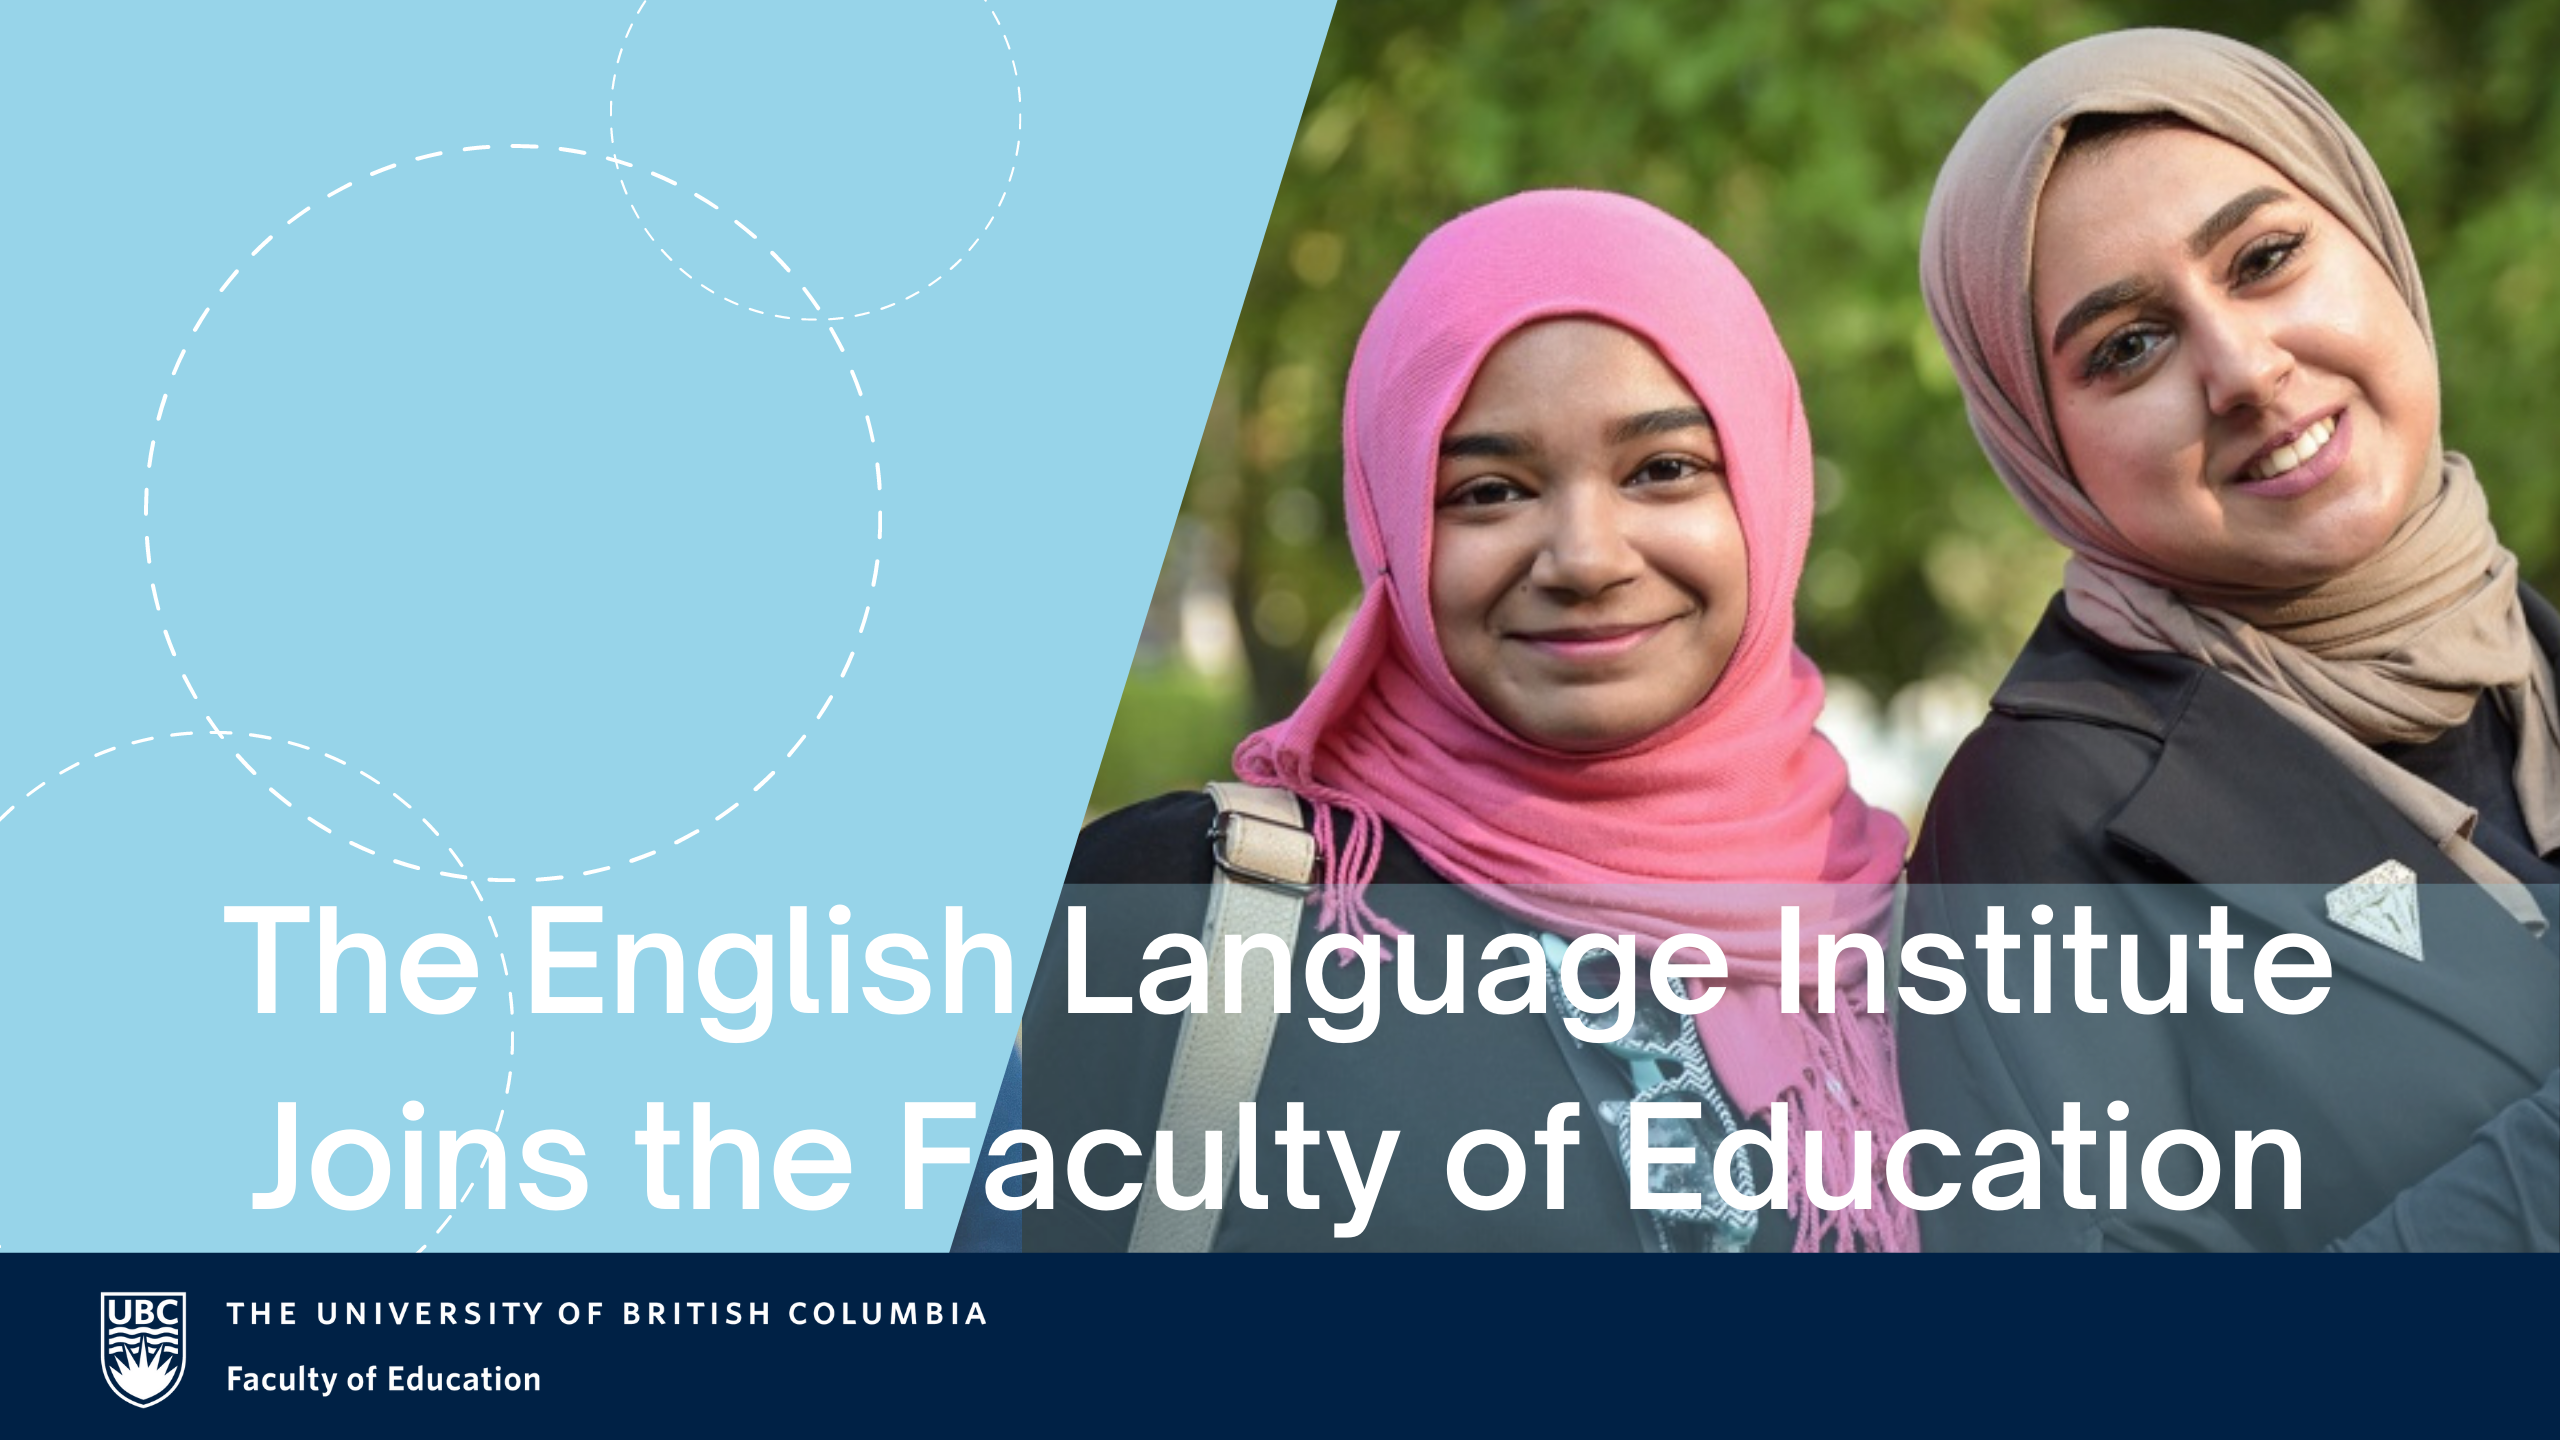 The ELI Joins the Faculty of Education